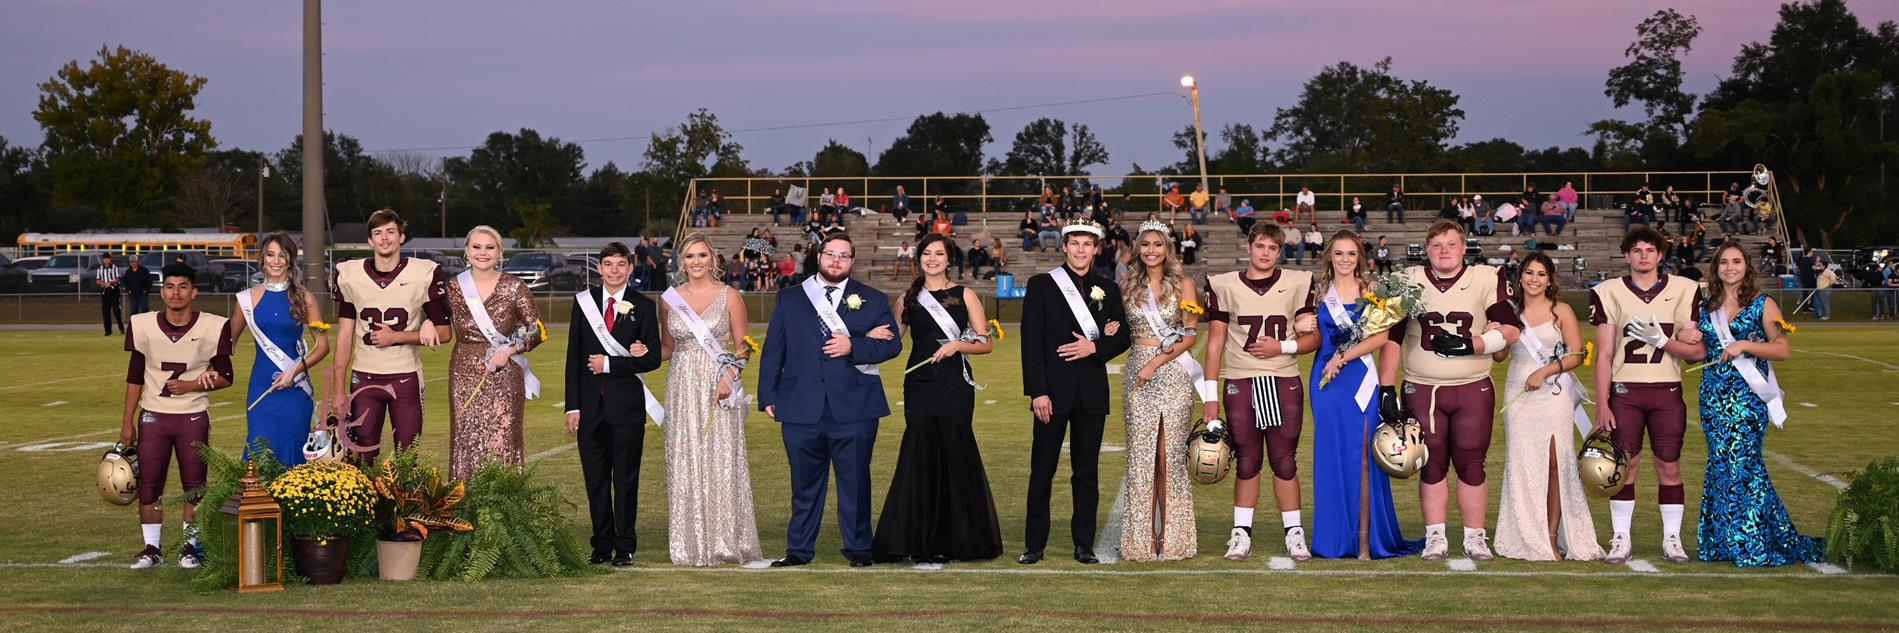 LCHS Homecoming Court